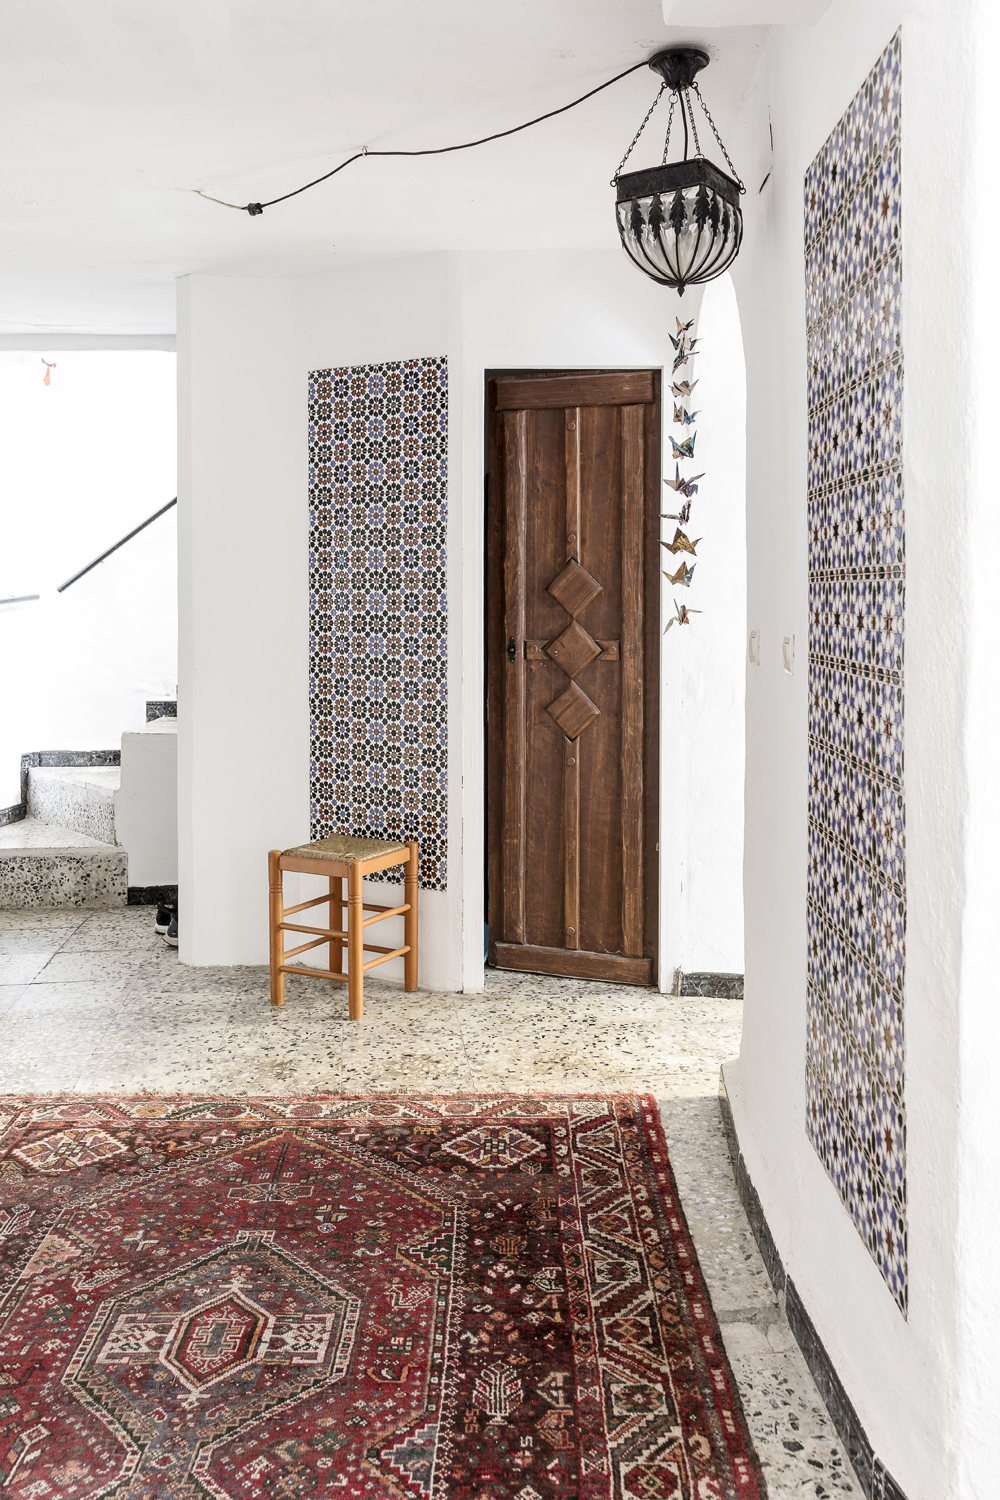 Canillas de Aceituno, Spain, holiday, rent, apartment, townhouse, rental, vacationhome, home, interior, spanish, style, interiorphotography, interior design, photographer, Frida Steiner, Visualaddict, visualaddictfrida,  moroccan tiles, andalucia,